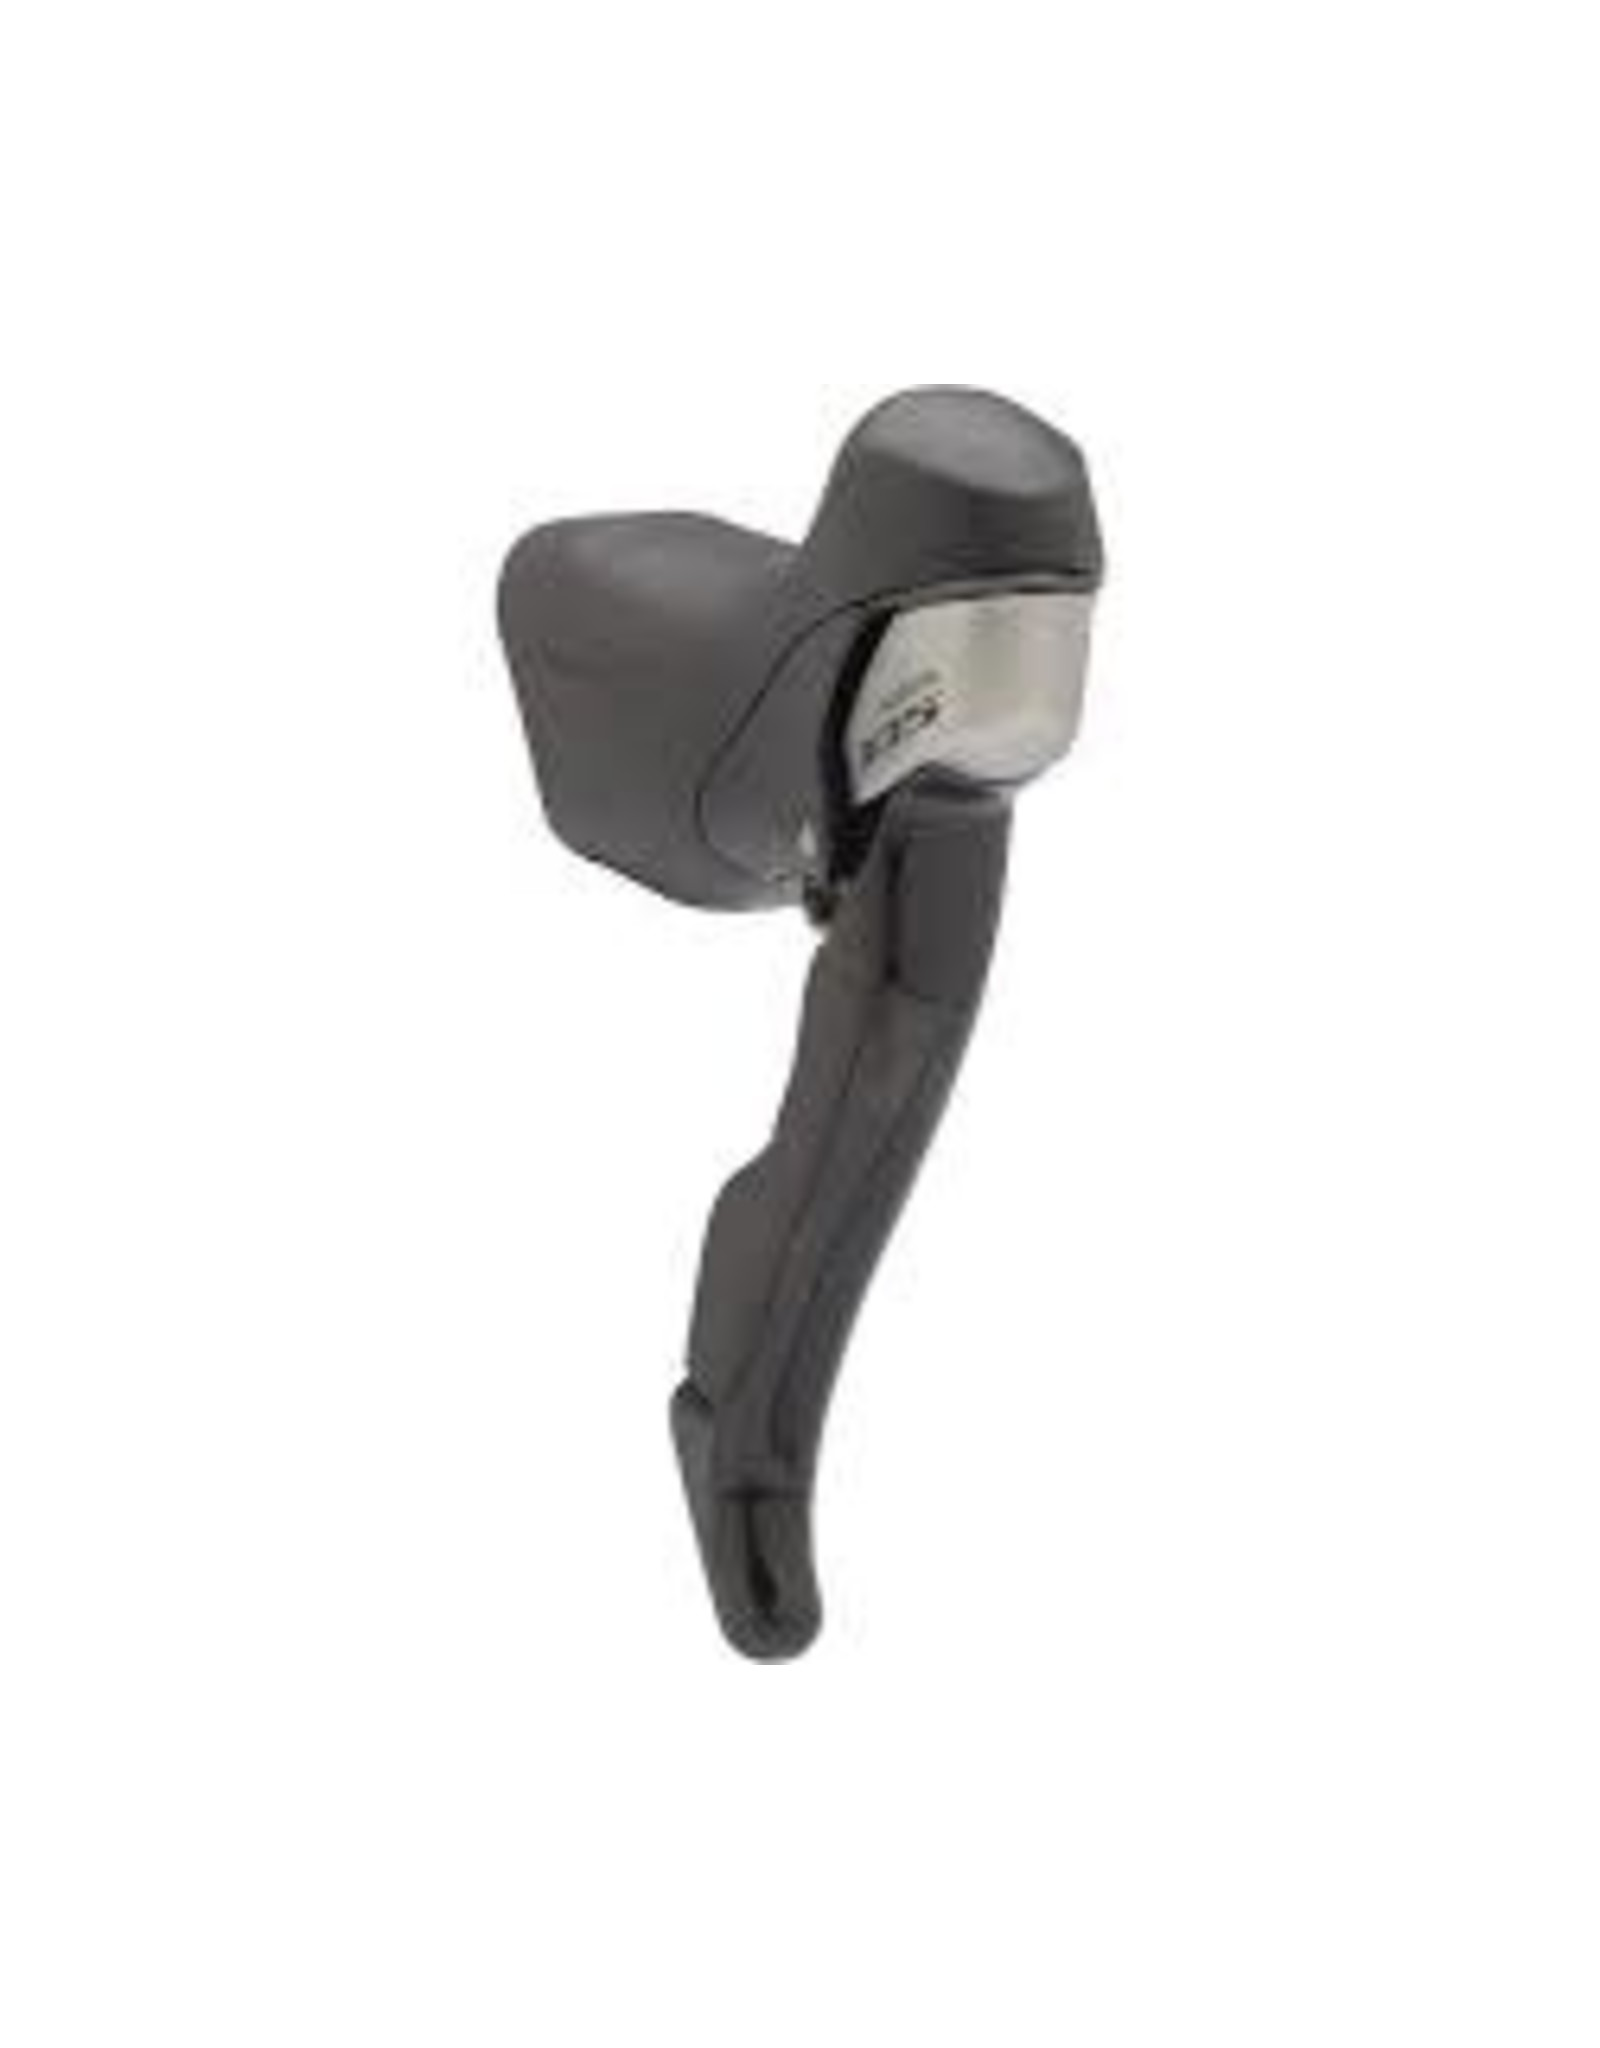 Shimano Shifter Shi 105 ST-5700 10-Speed Right STI Lever Black